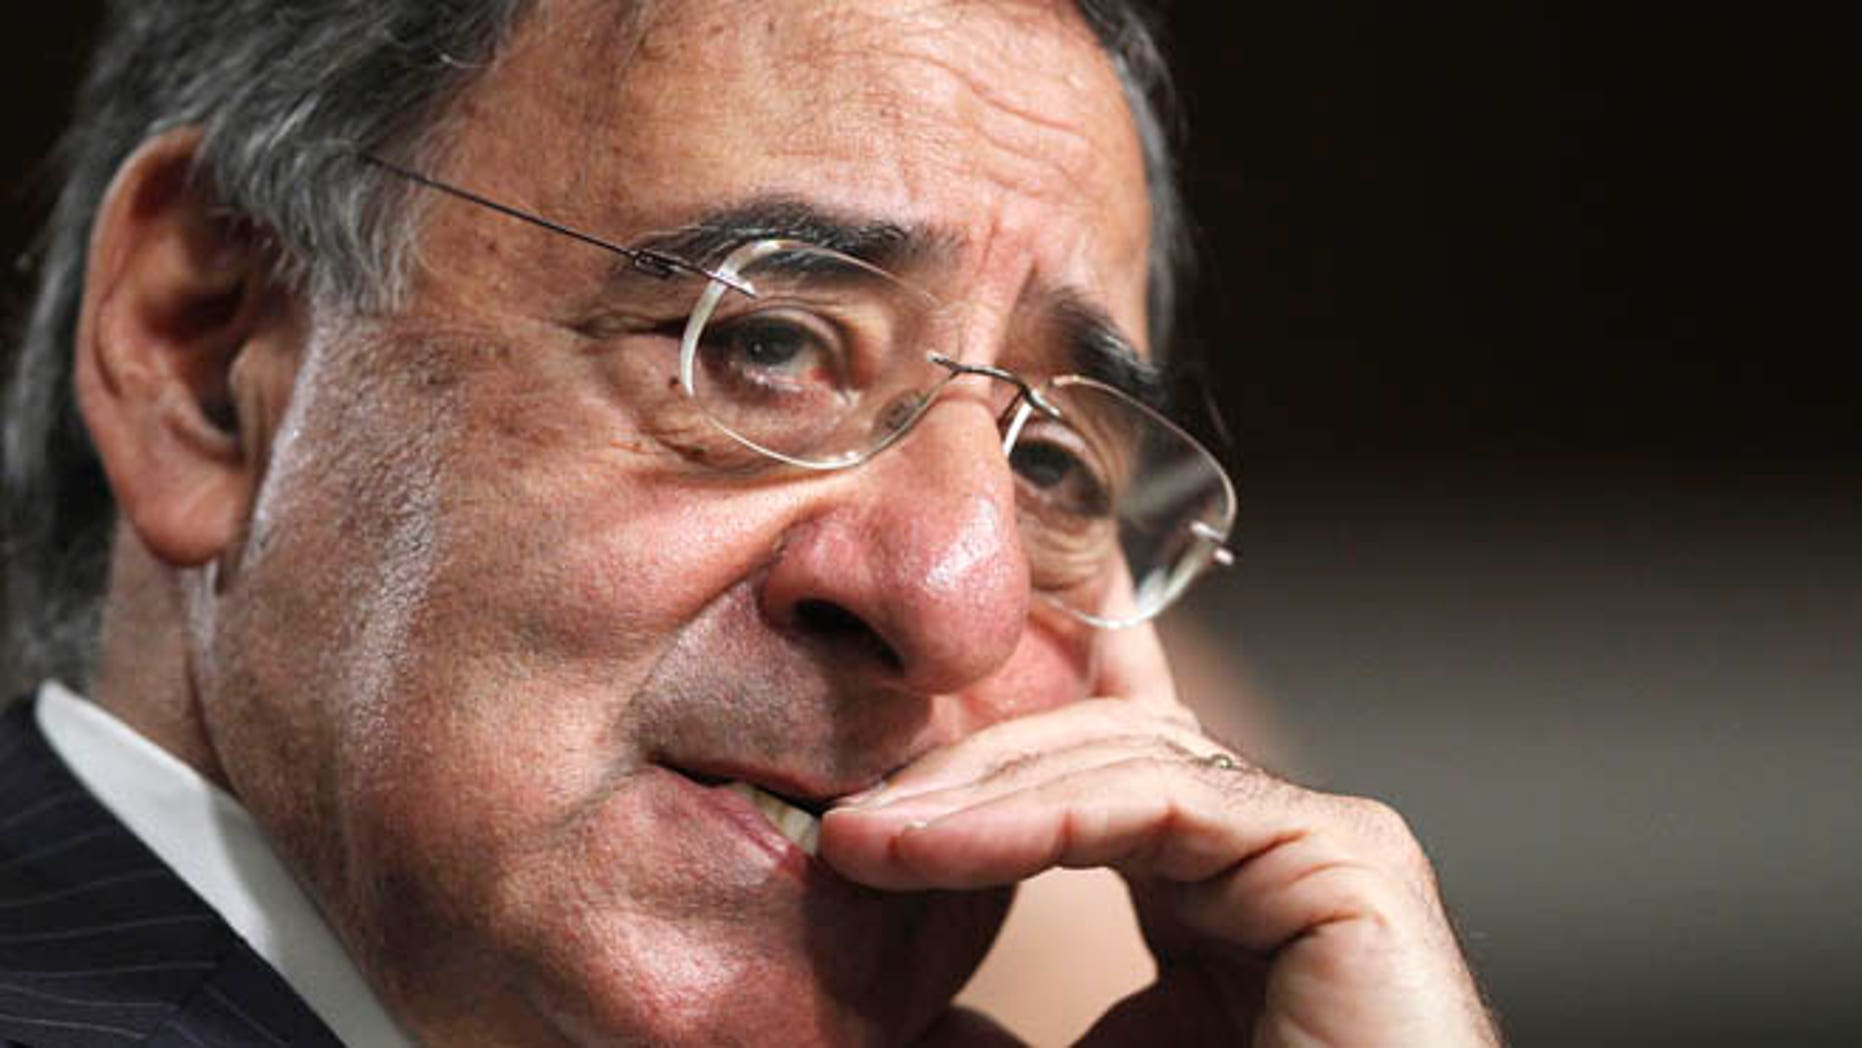 FILE - In this June 9, 2011 file photo, then-CIA Director nominee Leon Panetta  testifies on Capitol Hill in Washington.